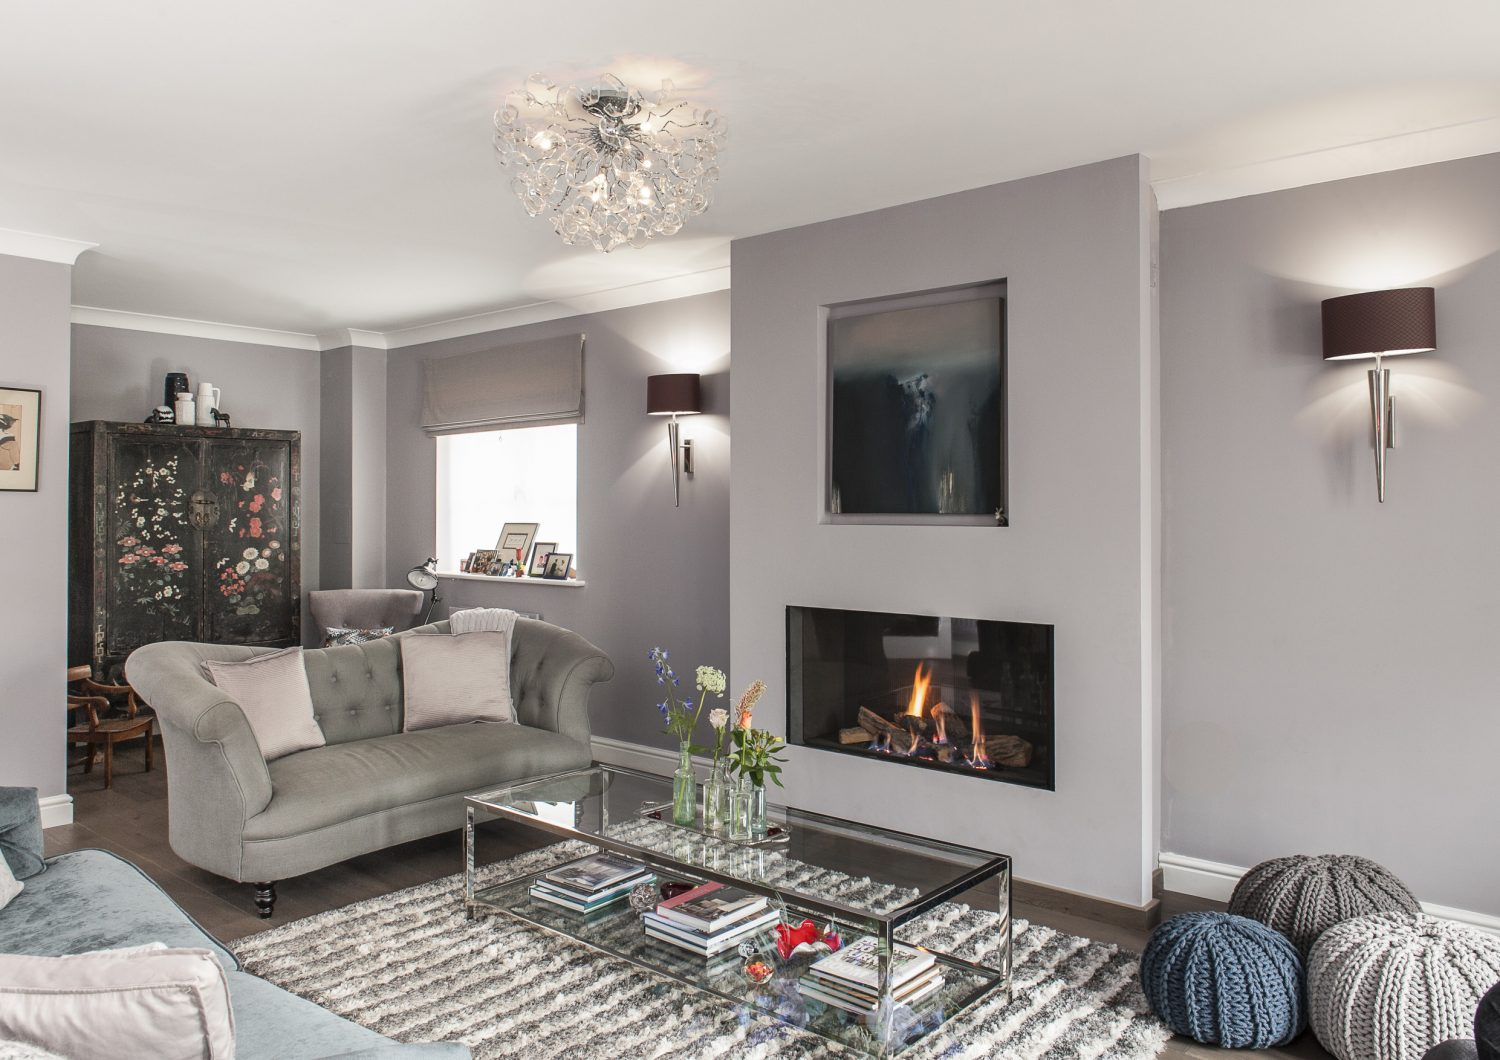 The starting point for the design of Phoebe's sitting room was the painting by artist Emma Green which is now mounted above the fireplace